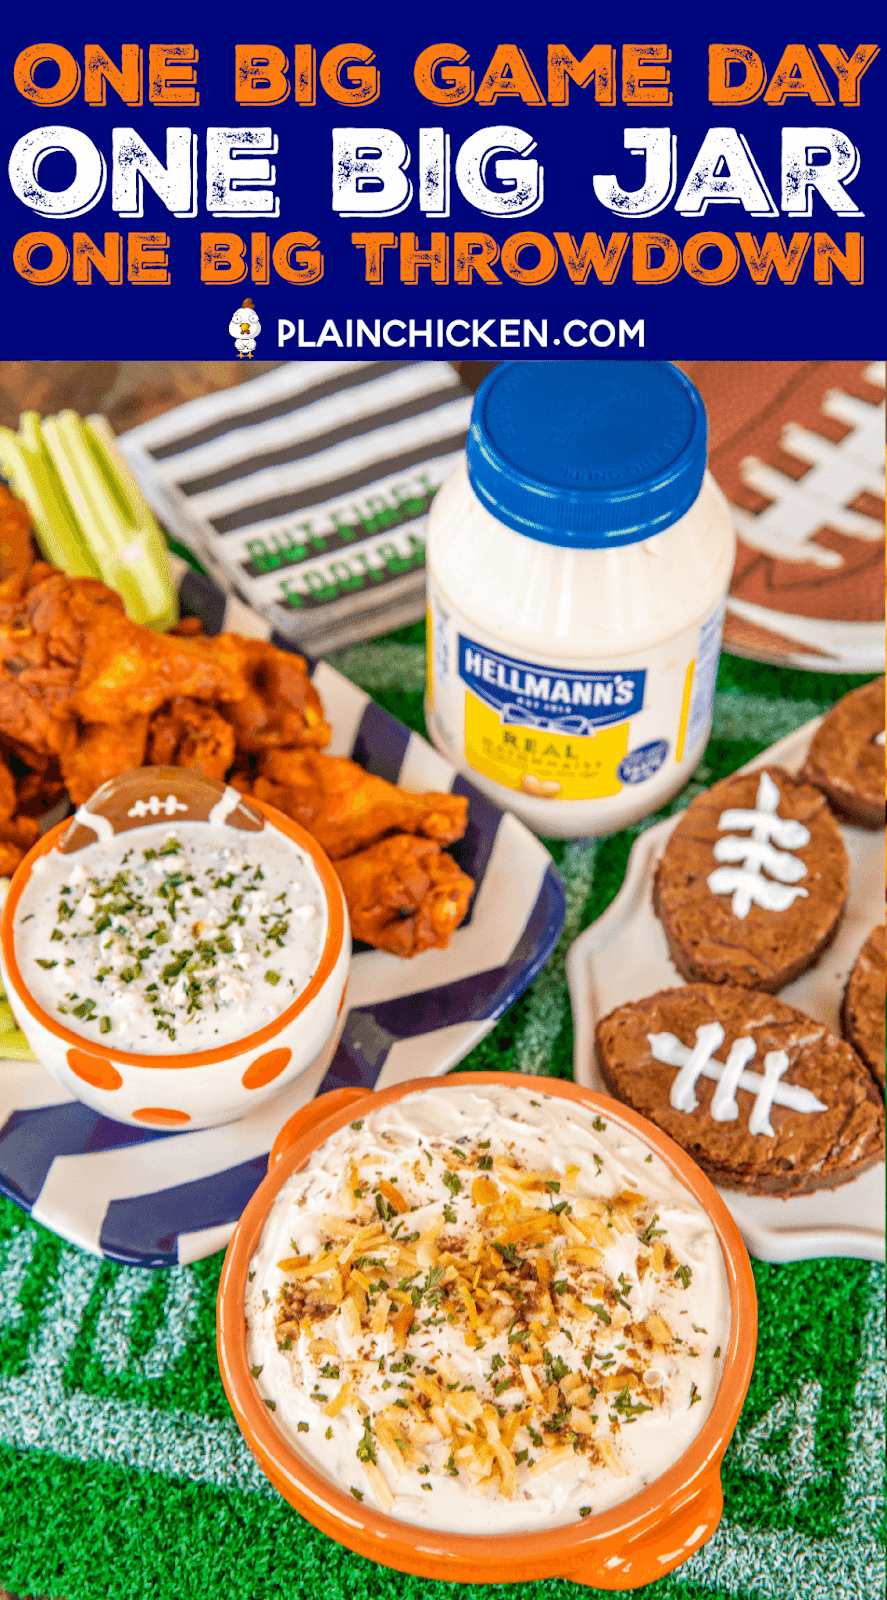 3 Easy Game Day Snacks made with Hellmann's/Best Foods Mayonnaise. 3 Ingredient Creamy Onion Dip, Blue Cheese Ranch Dip and Mayonnaise Brownies!